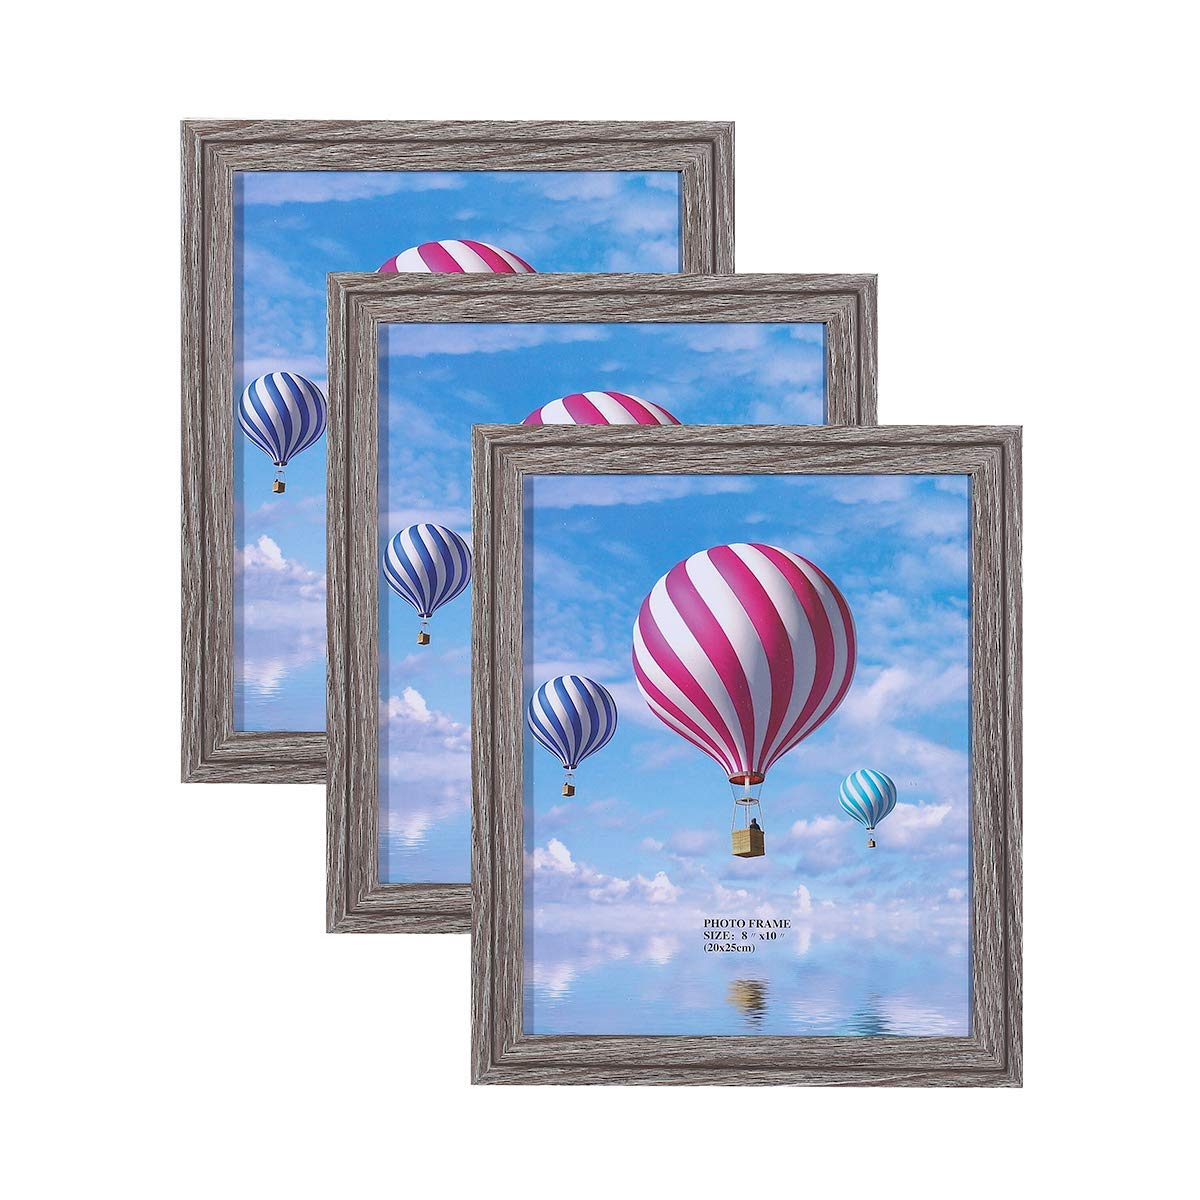 Metrekey 8x10 Picture Frame (3 Pack, Gray Oak Wood Finish), Photo Frame 8x10,for Table Top Display and Wall mounting Photo Frame by Metrekey